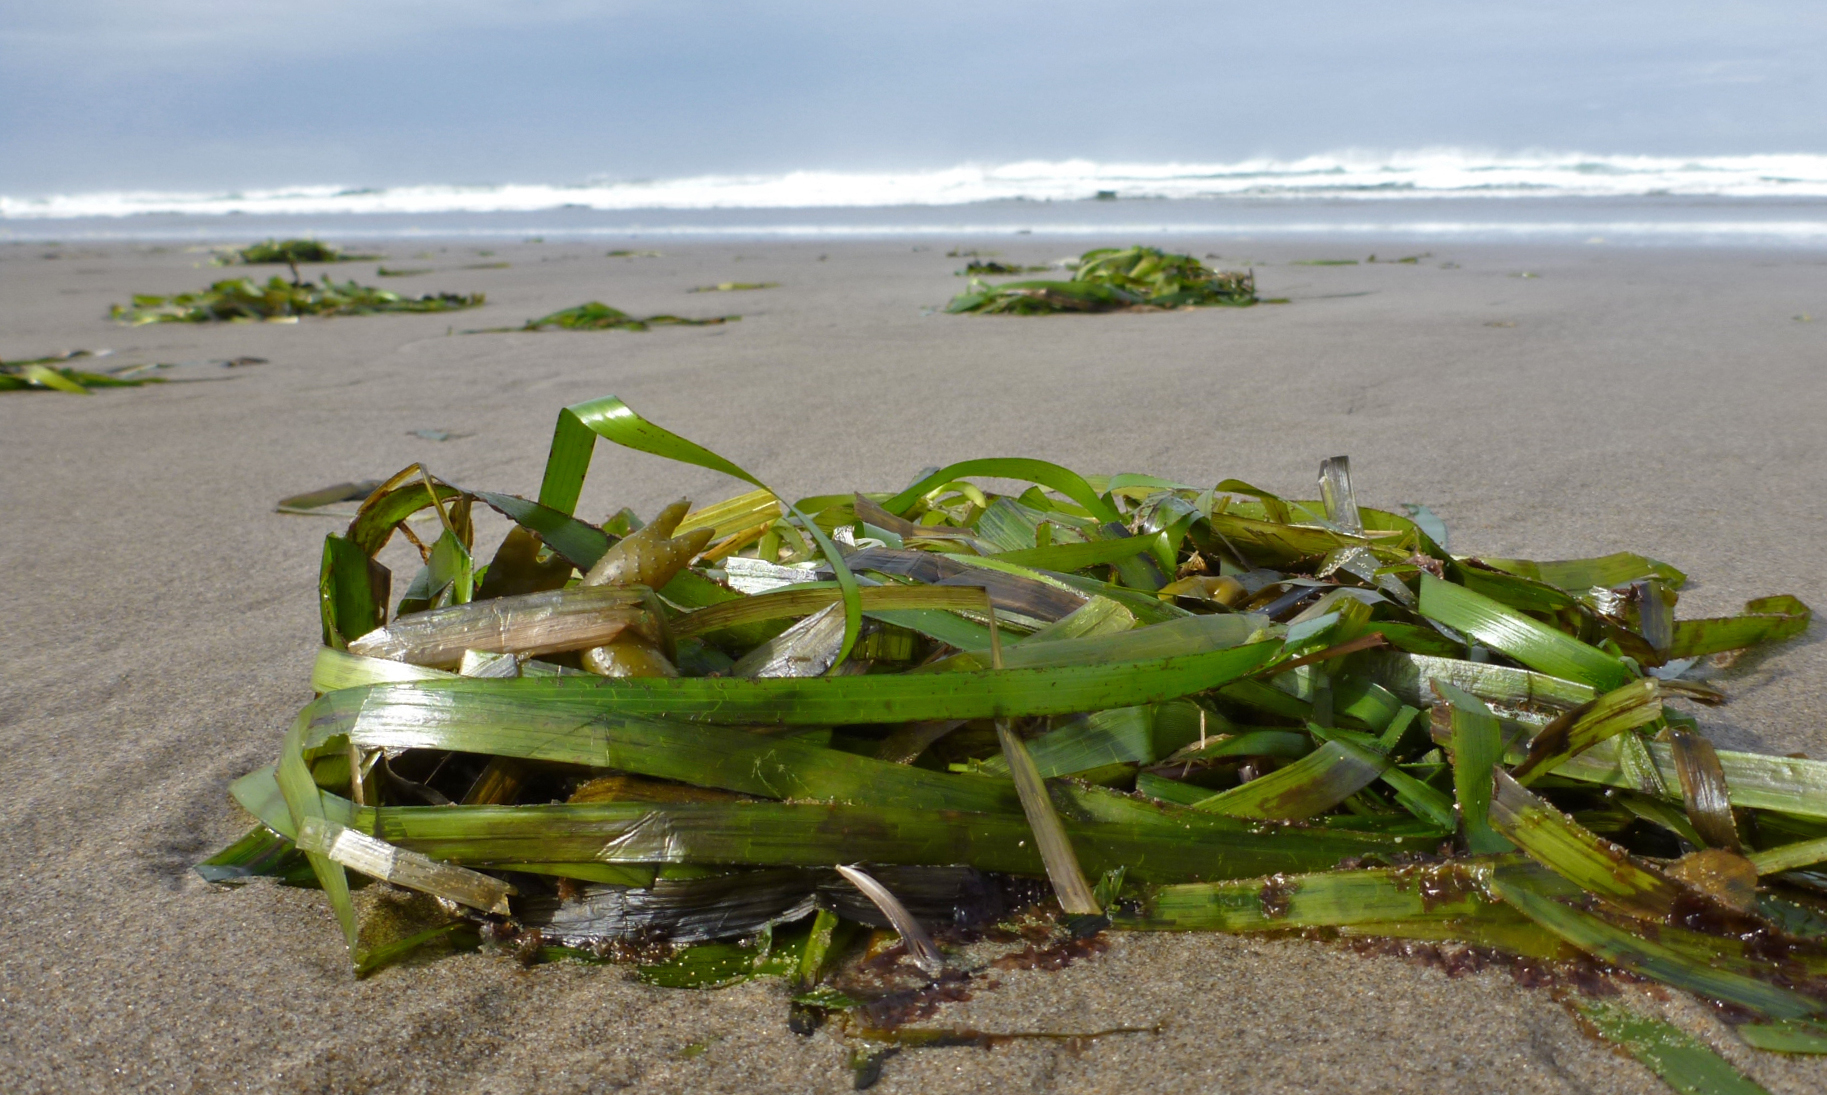 A drift eelgrass clump in the foreground; more clumps and eventually, the surf zone in the background